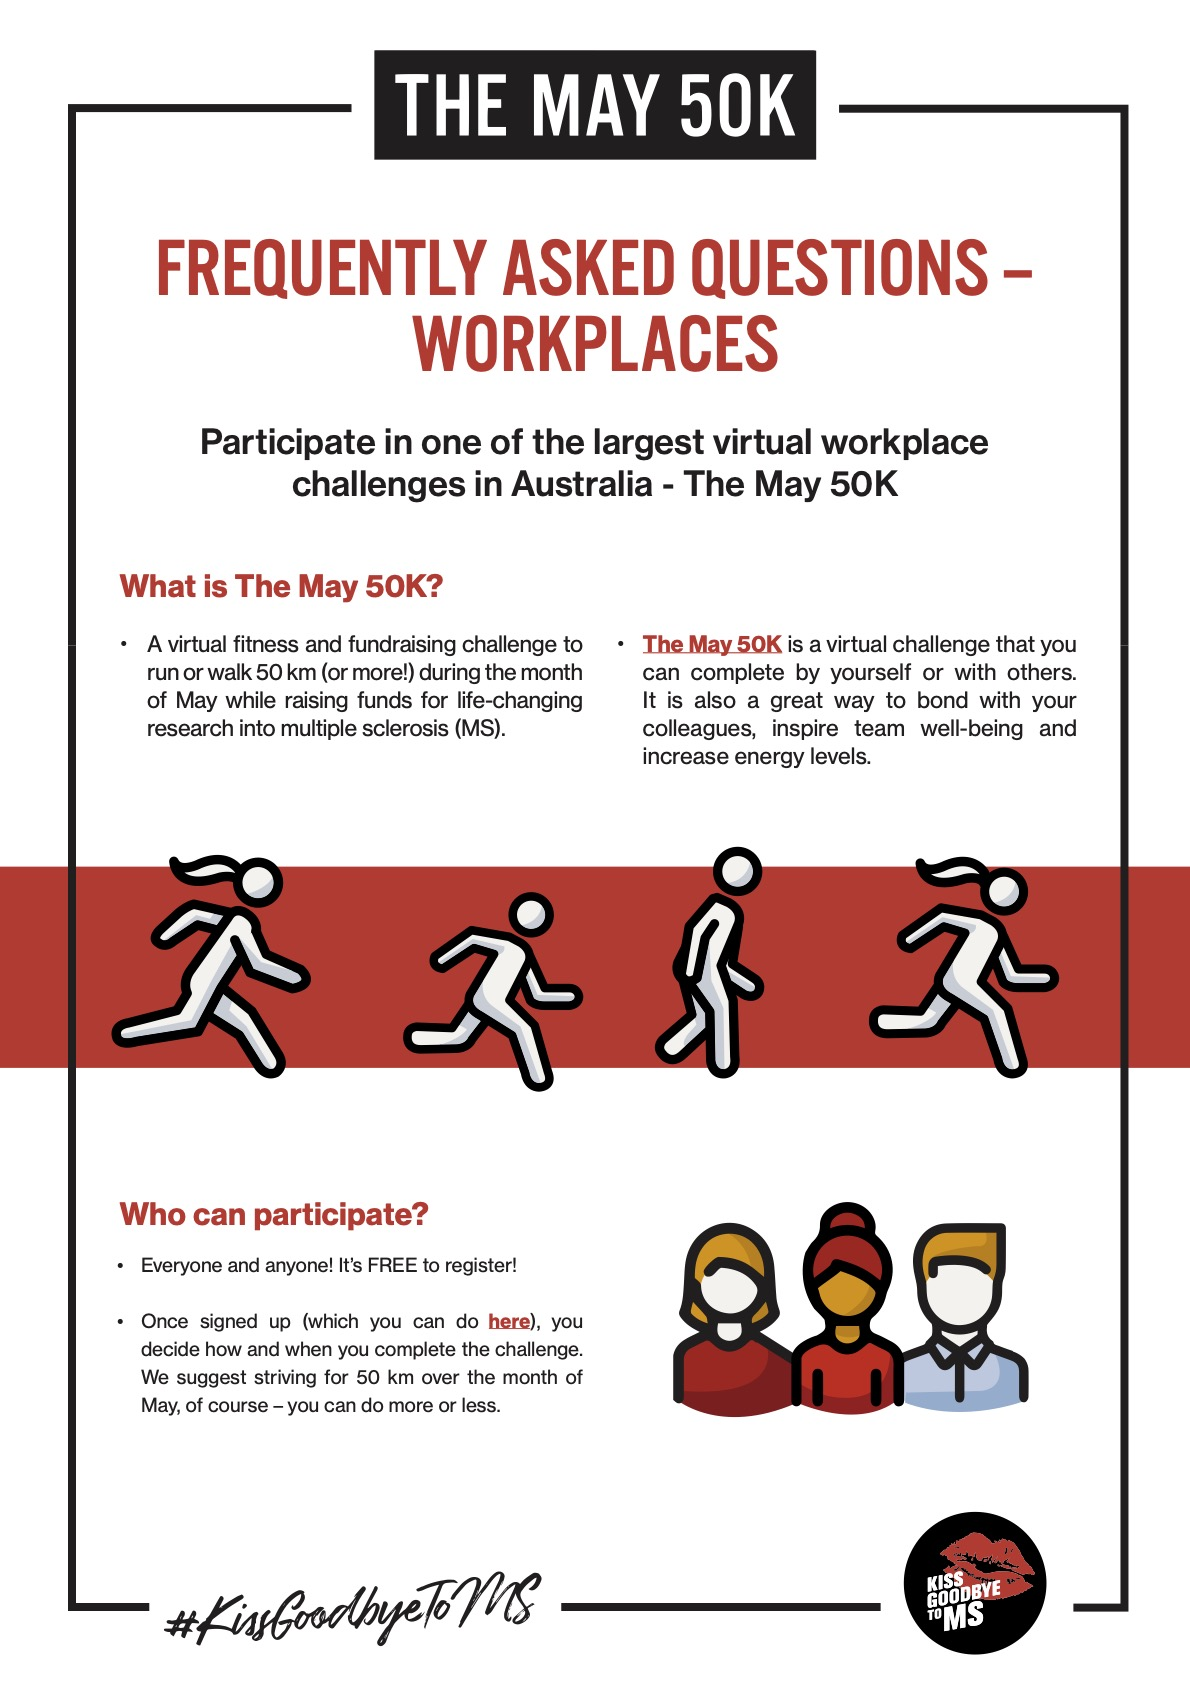 Workplace - The May 50K: FAQs